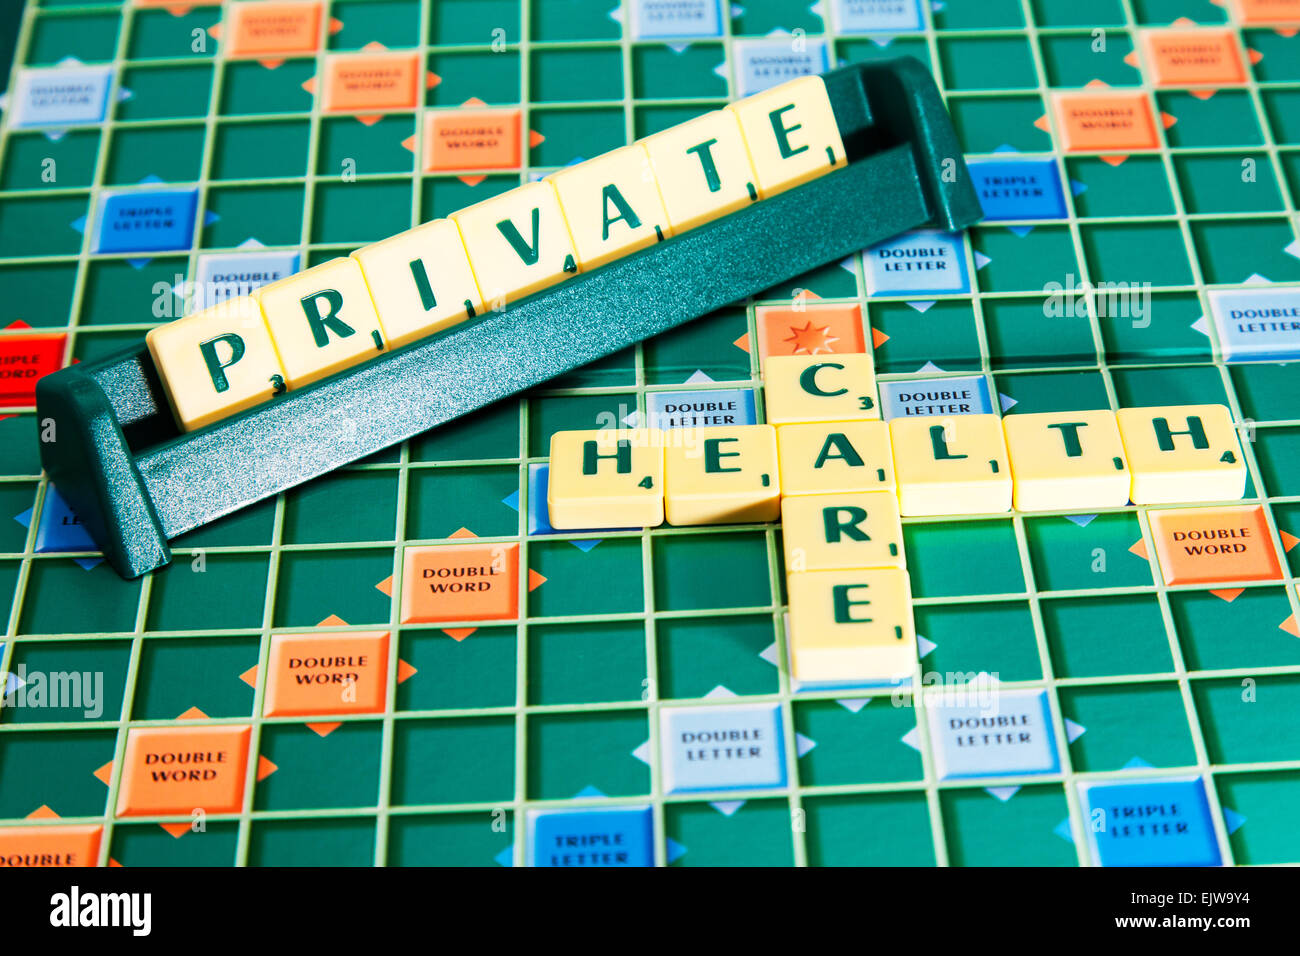 private health care medical bmi bupa insurance words using scrabble tiles to spell out stock